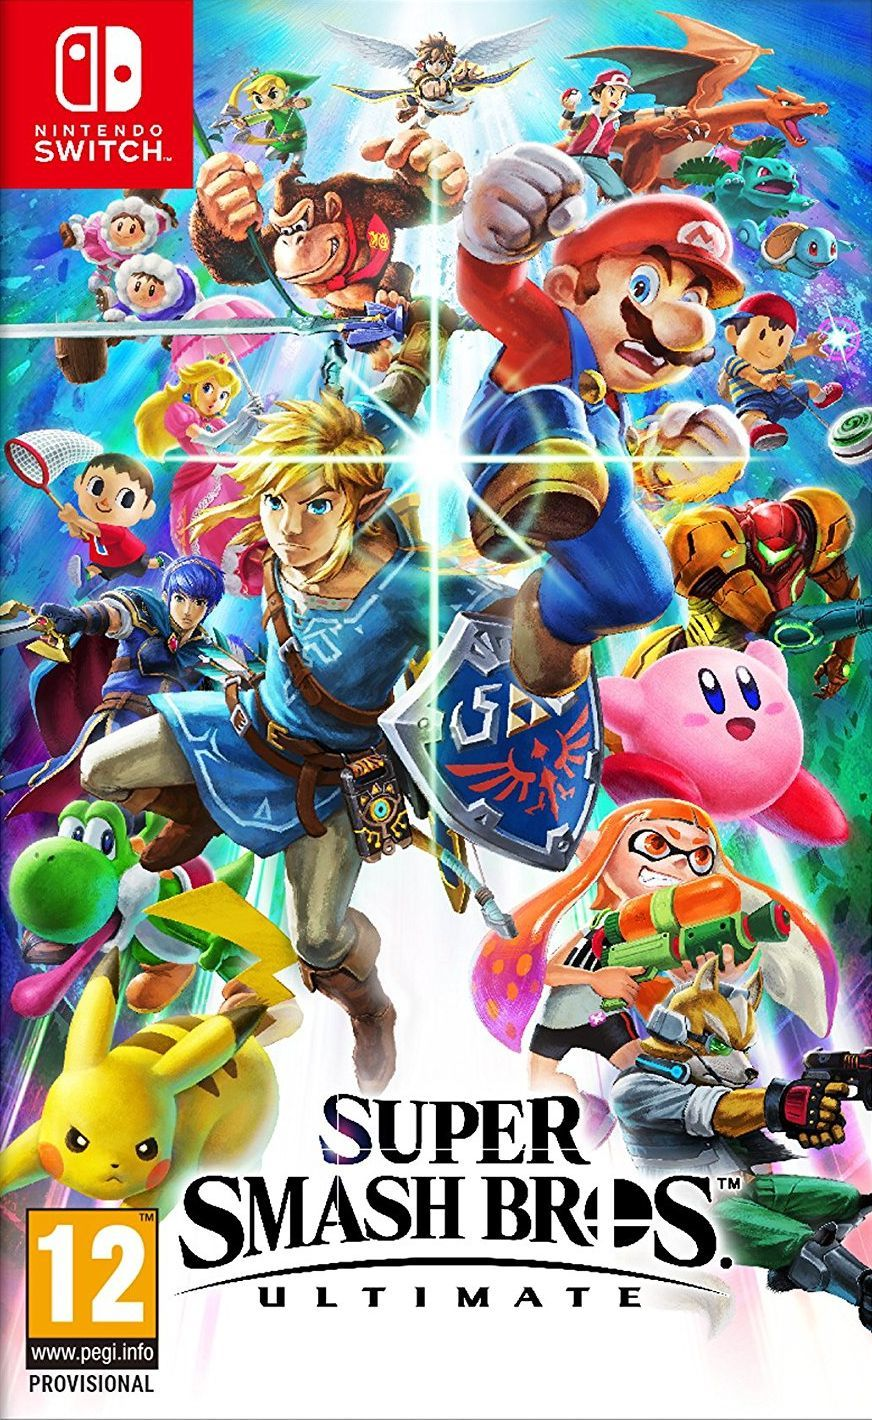 Super Smash Bros. Ultimate (Nintendo Switch) - 1